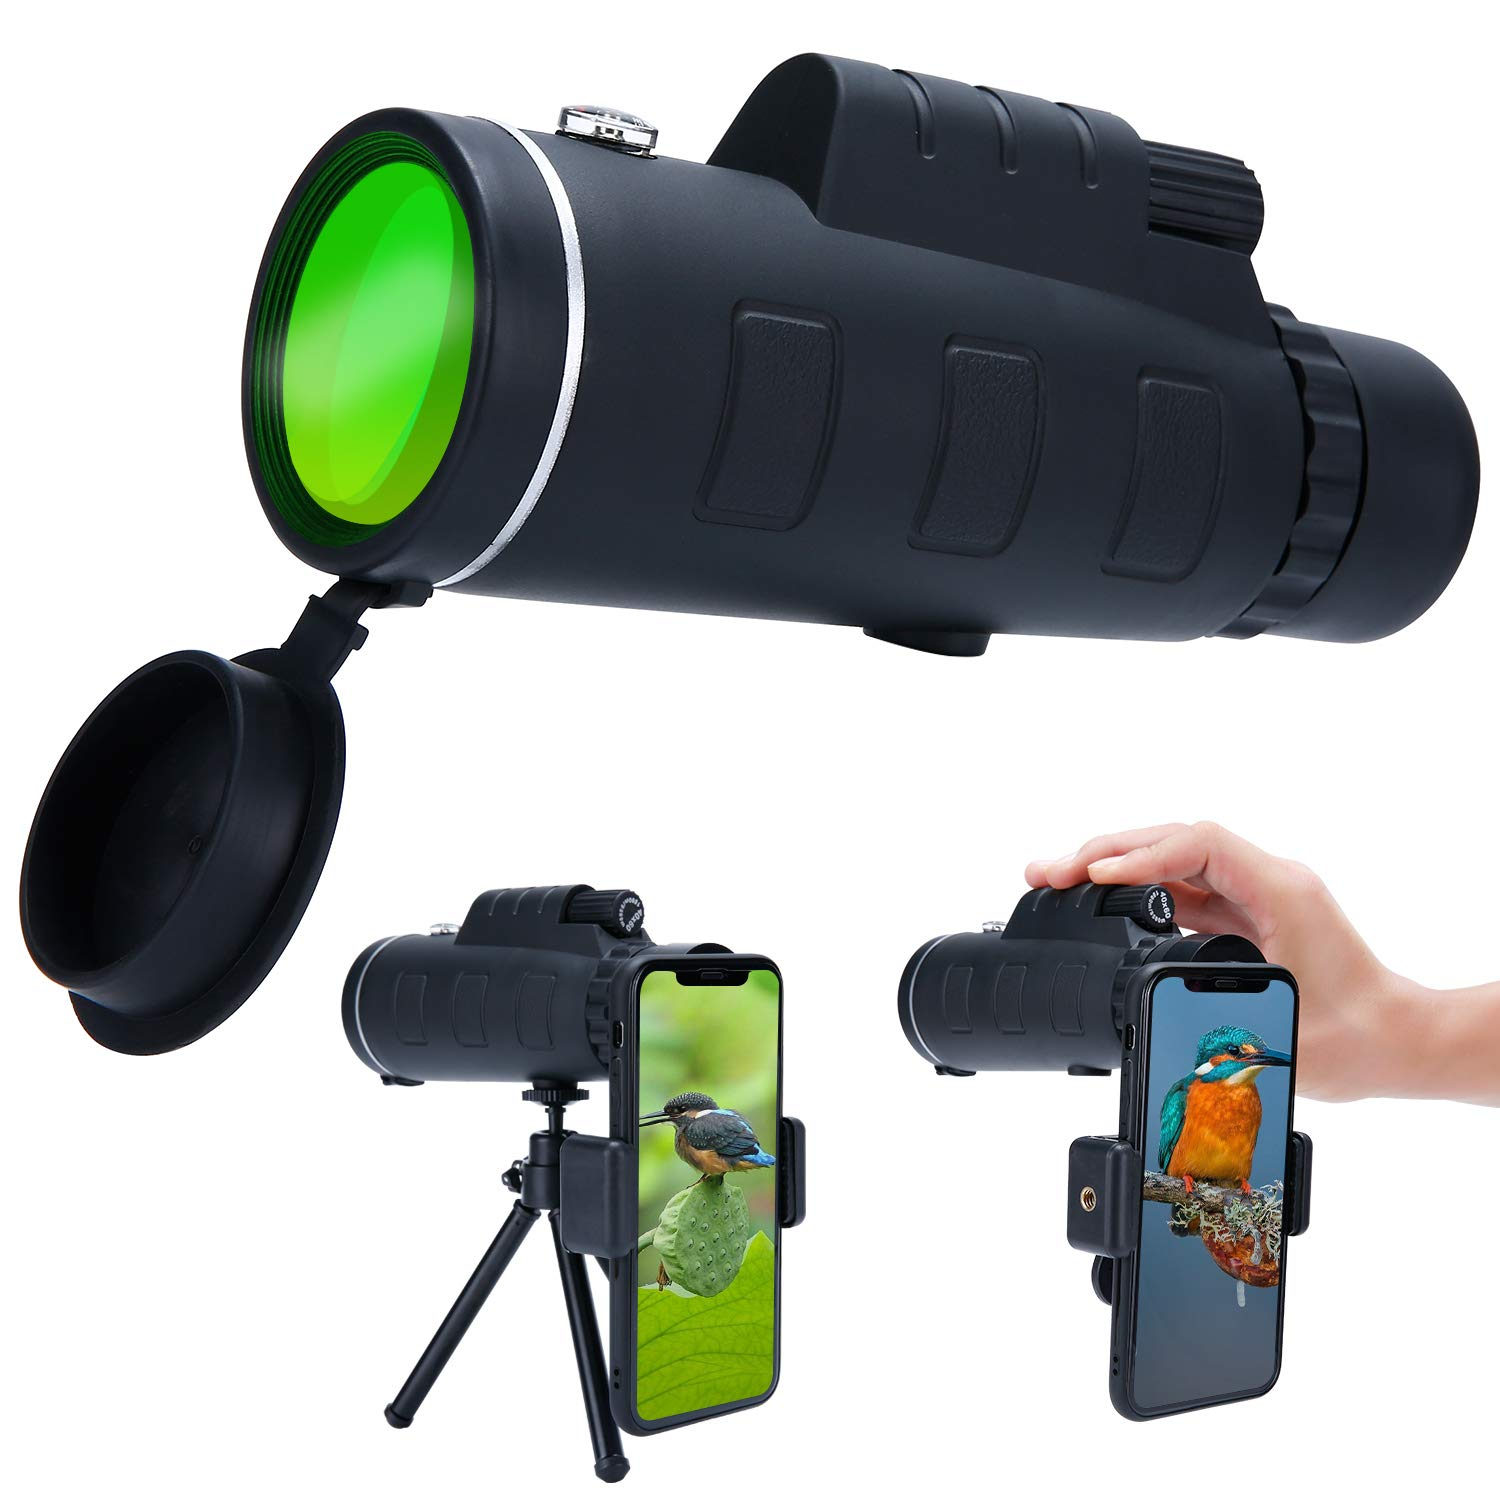 Super Clear 40x60 Monocular Telescope, High Powered High Optical Monocular with Dual Focus Zoom, Portable Waterproof  Fogproof for BirdWatching, Traveling, Hunting, Camping, Outdoors Climbing